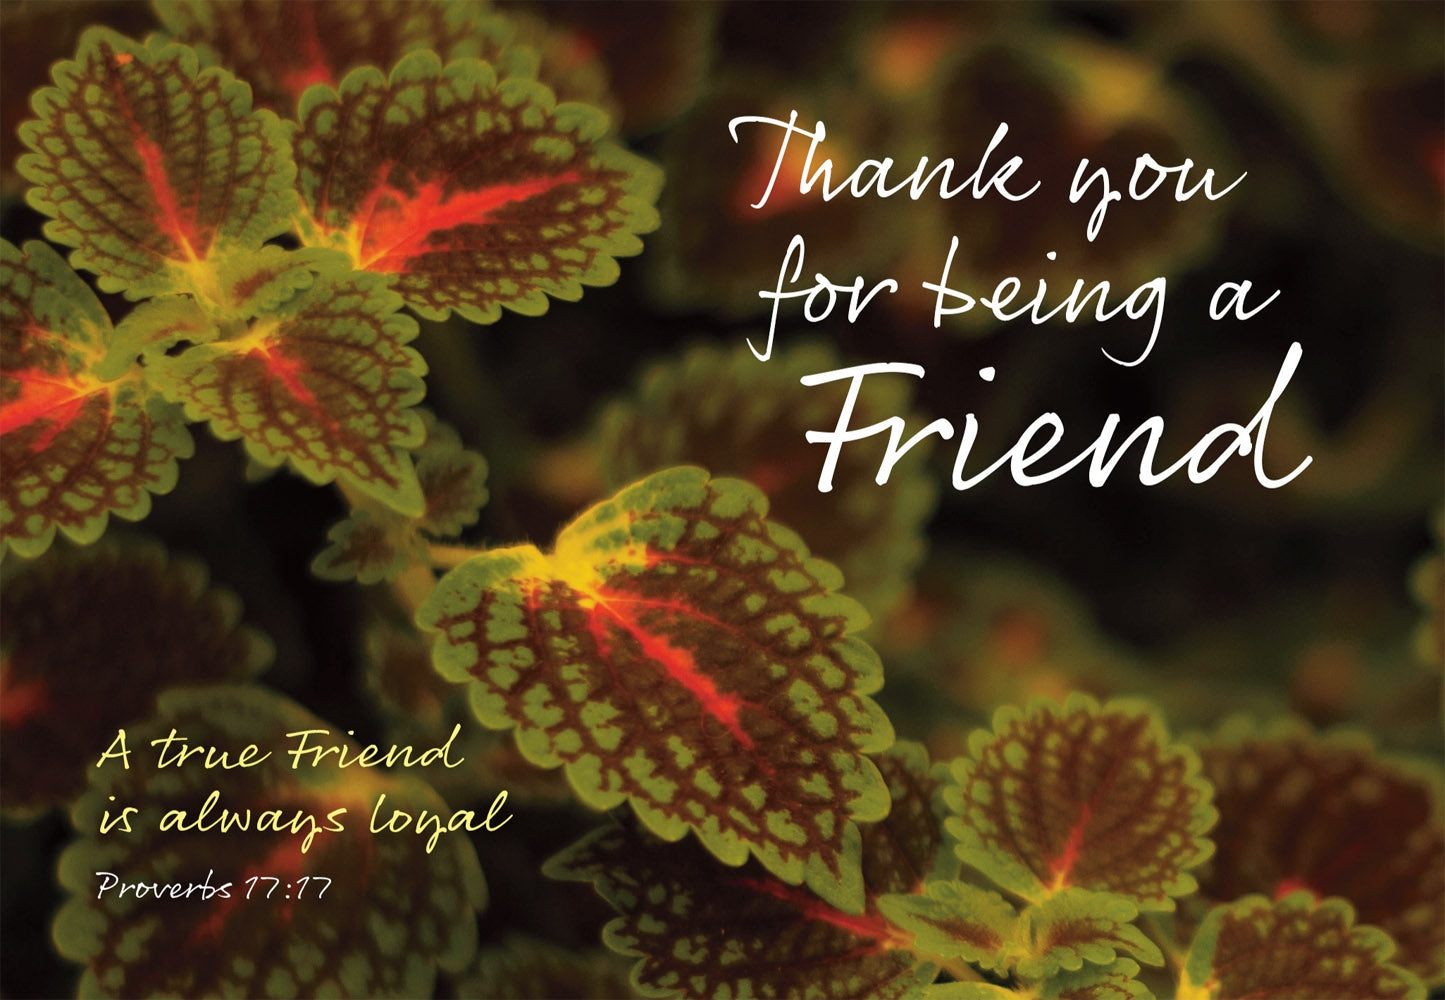 Thank You - Leaves  Std Card Gloss (6 Pack)Thank You - Leaves  Std Card Gloss (6 Pack)